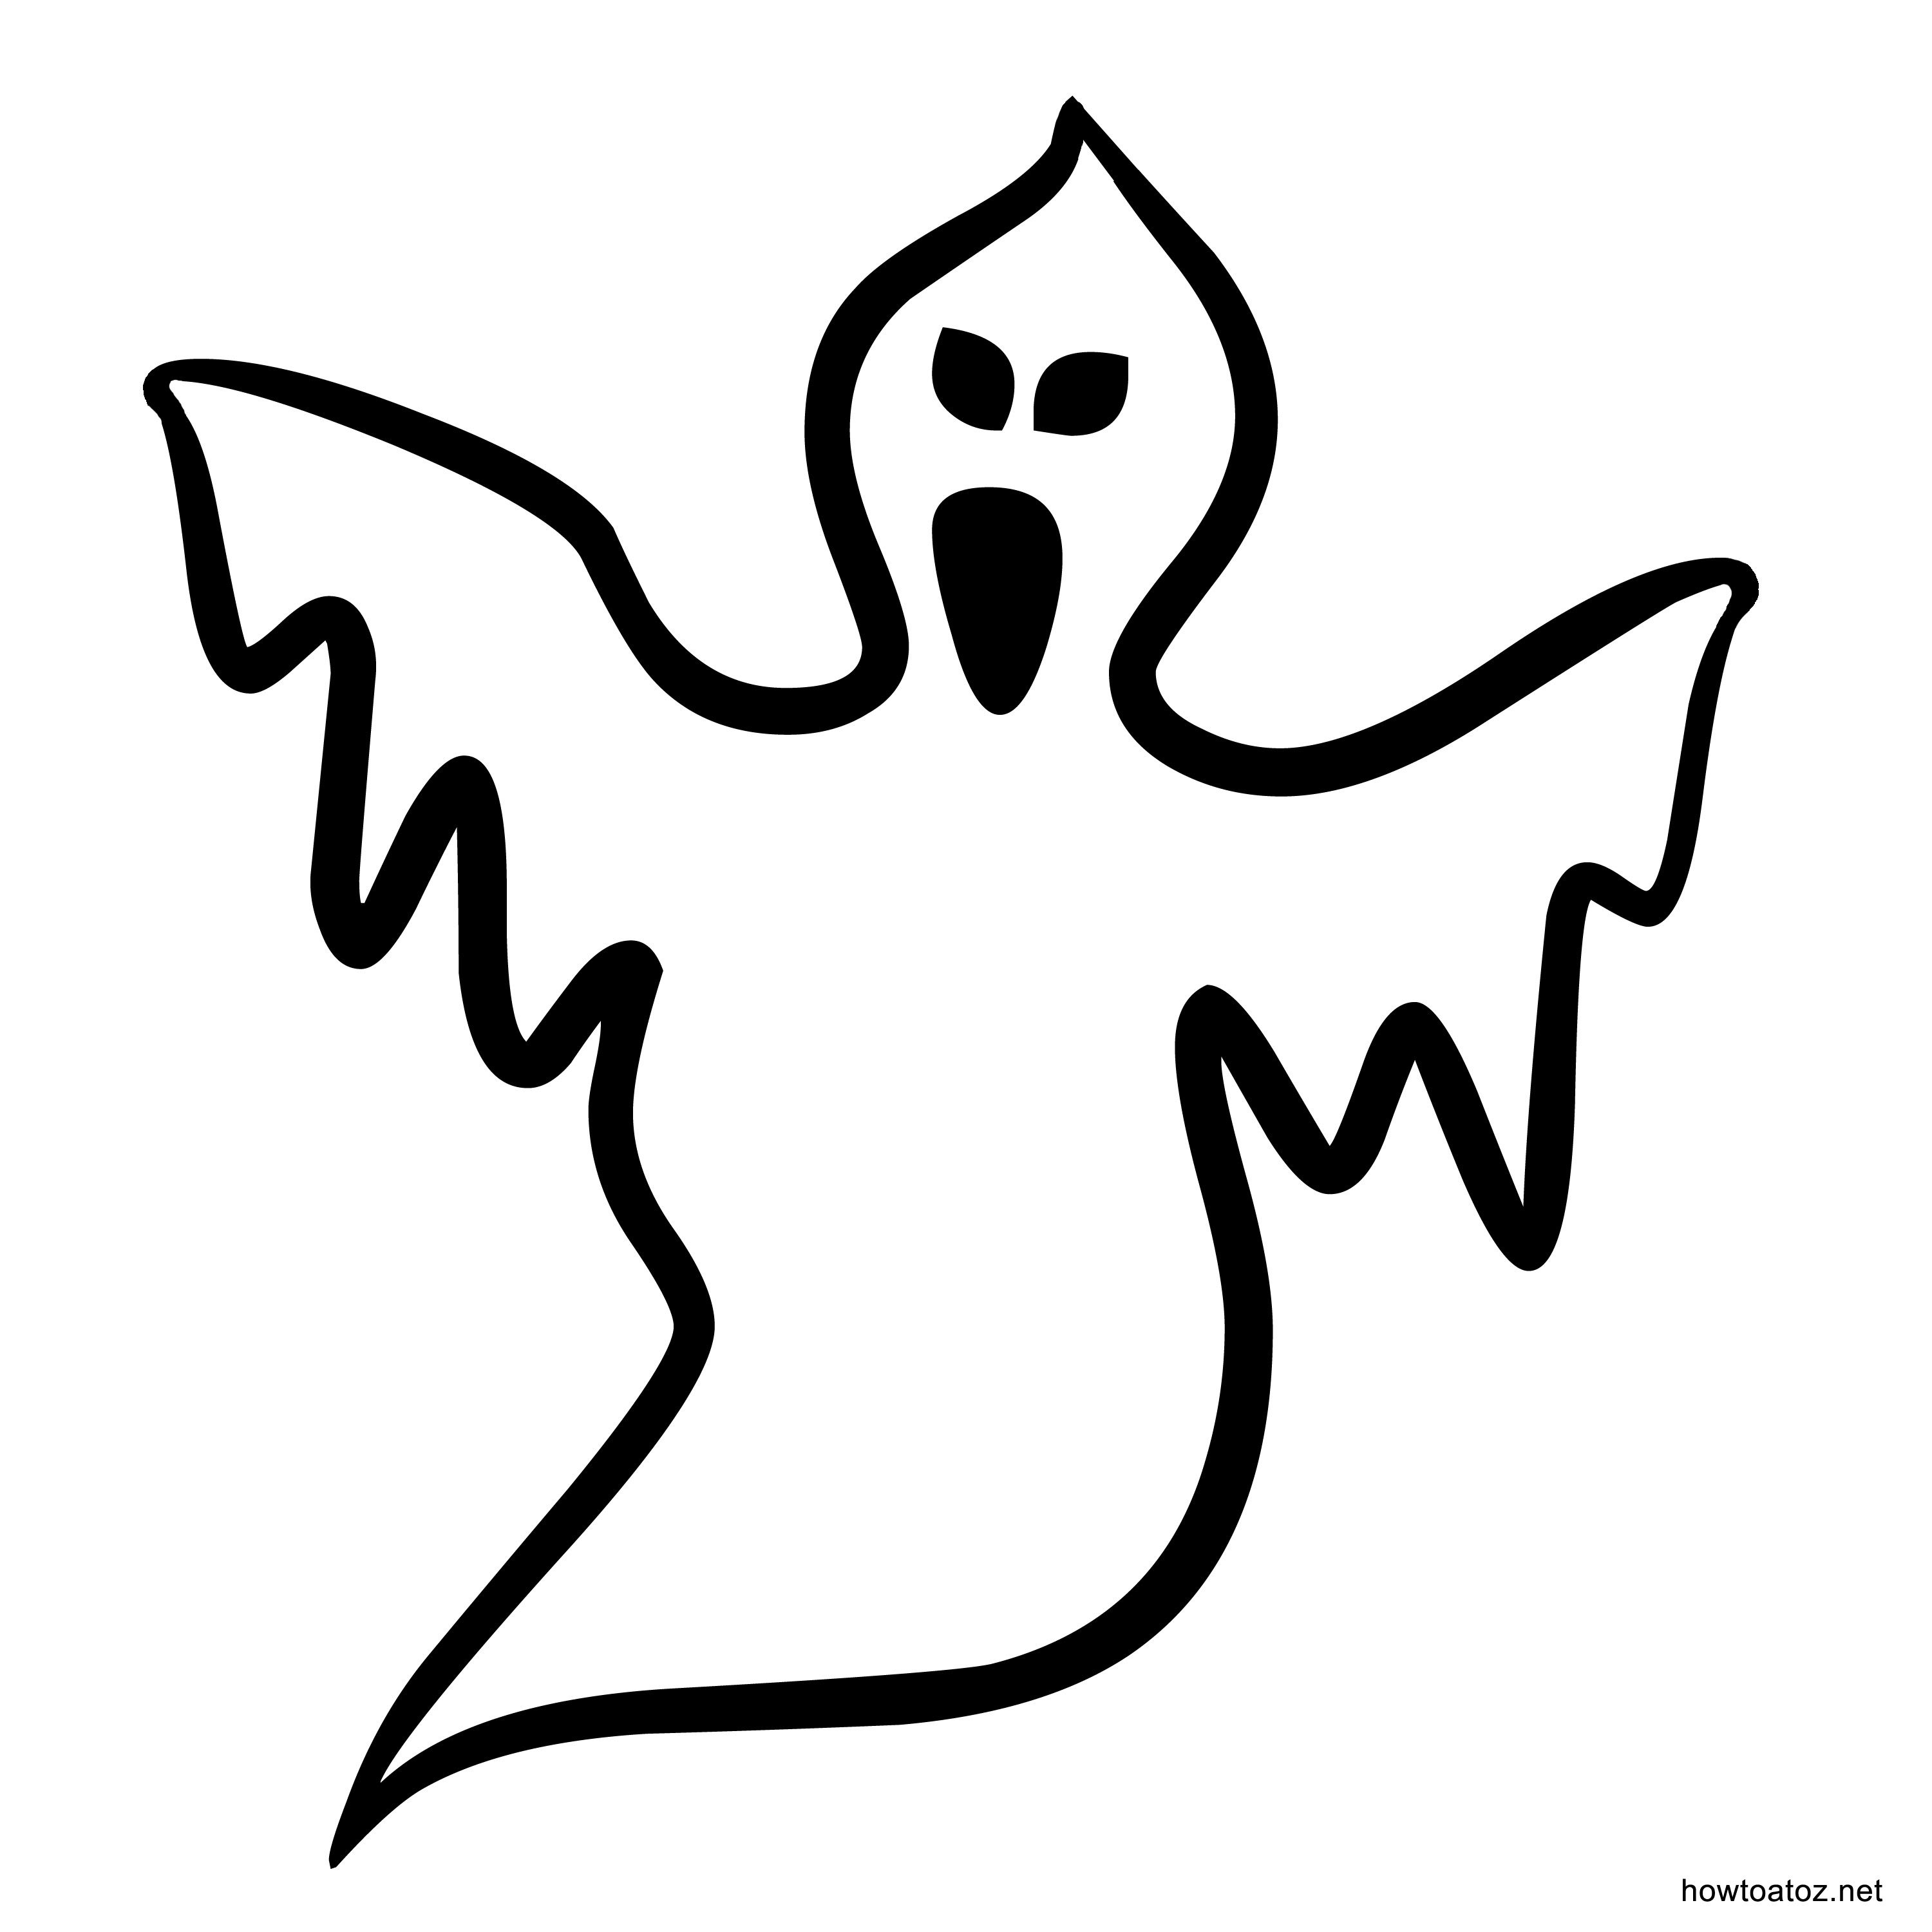 5 Best Images Of Free Printable Halloween Stencils - Free - Free Printable Pumpkin Stencils